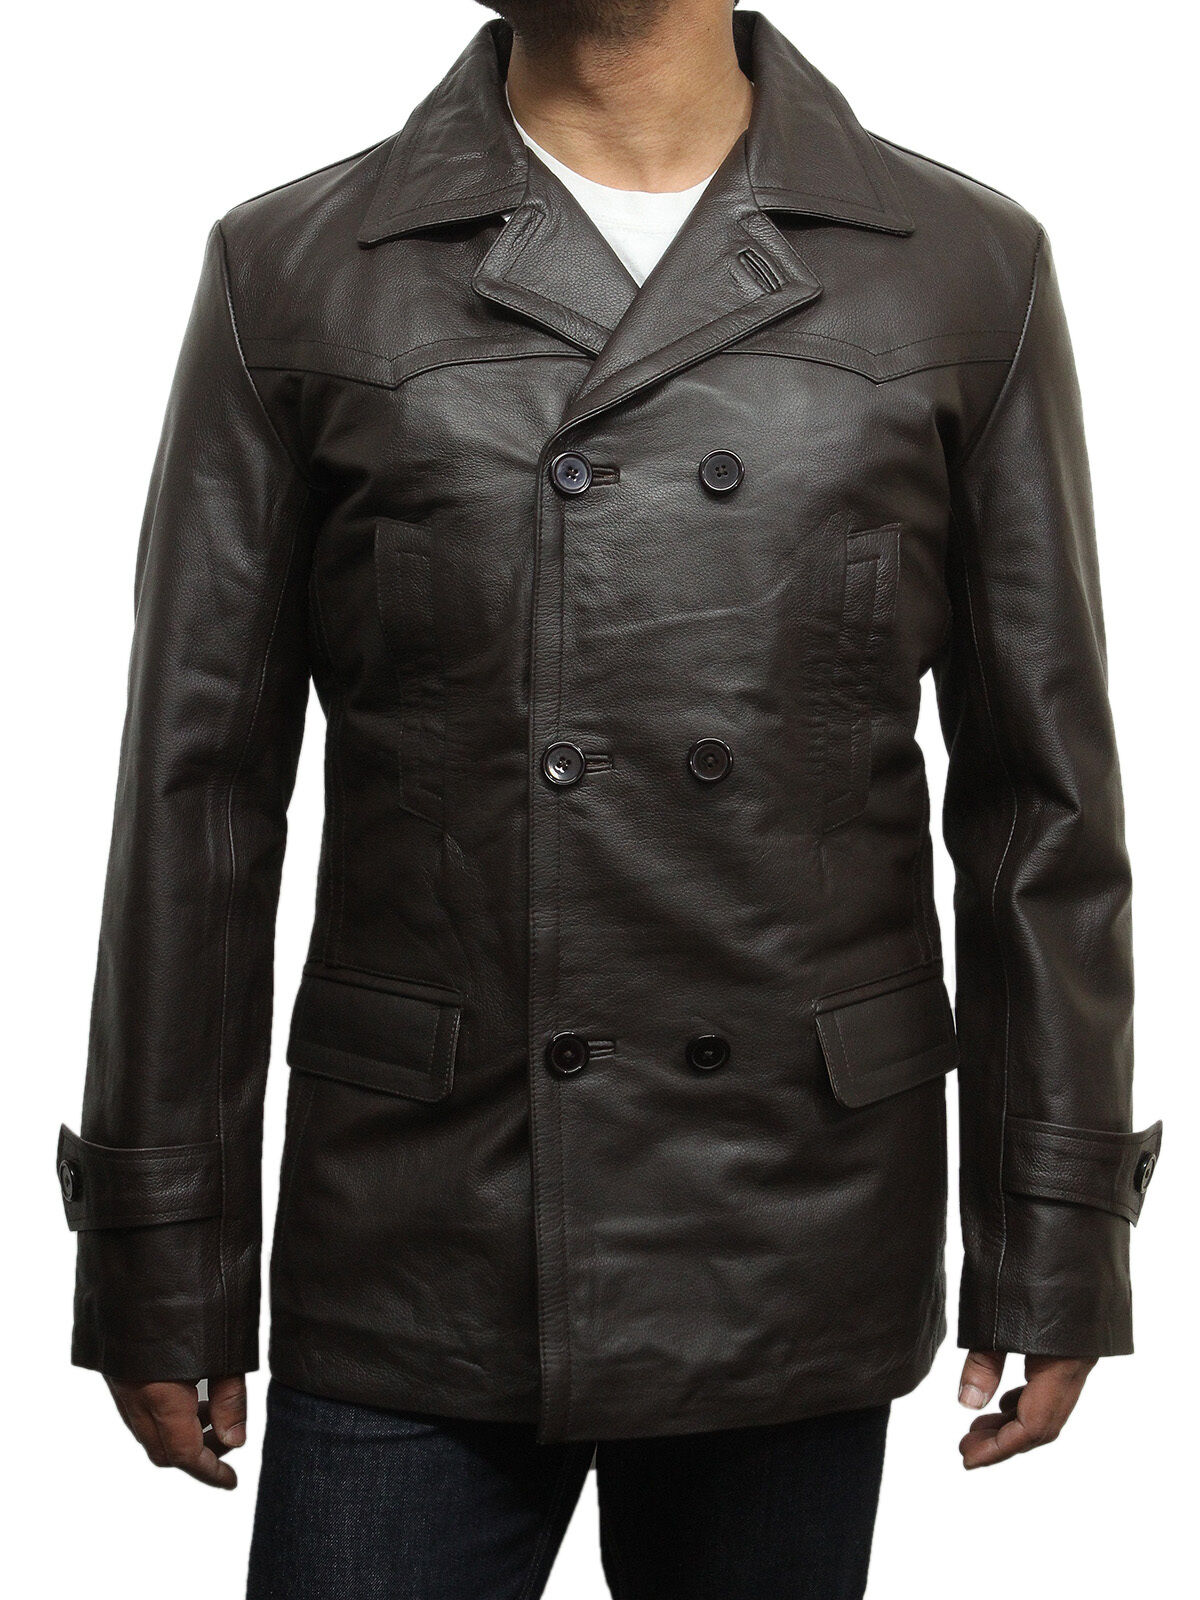 World war 2 leather jacket